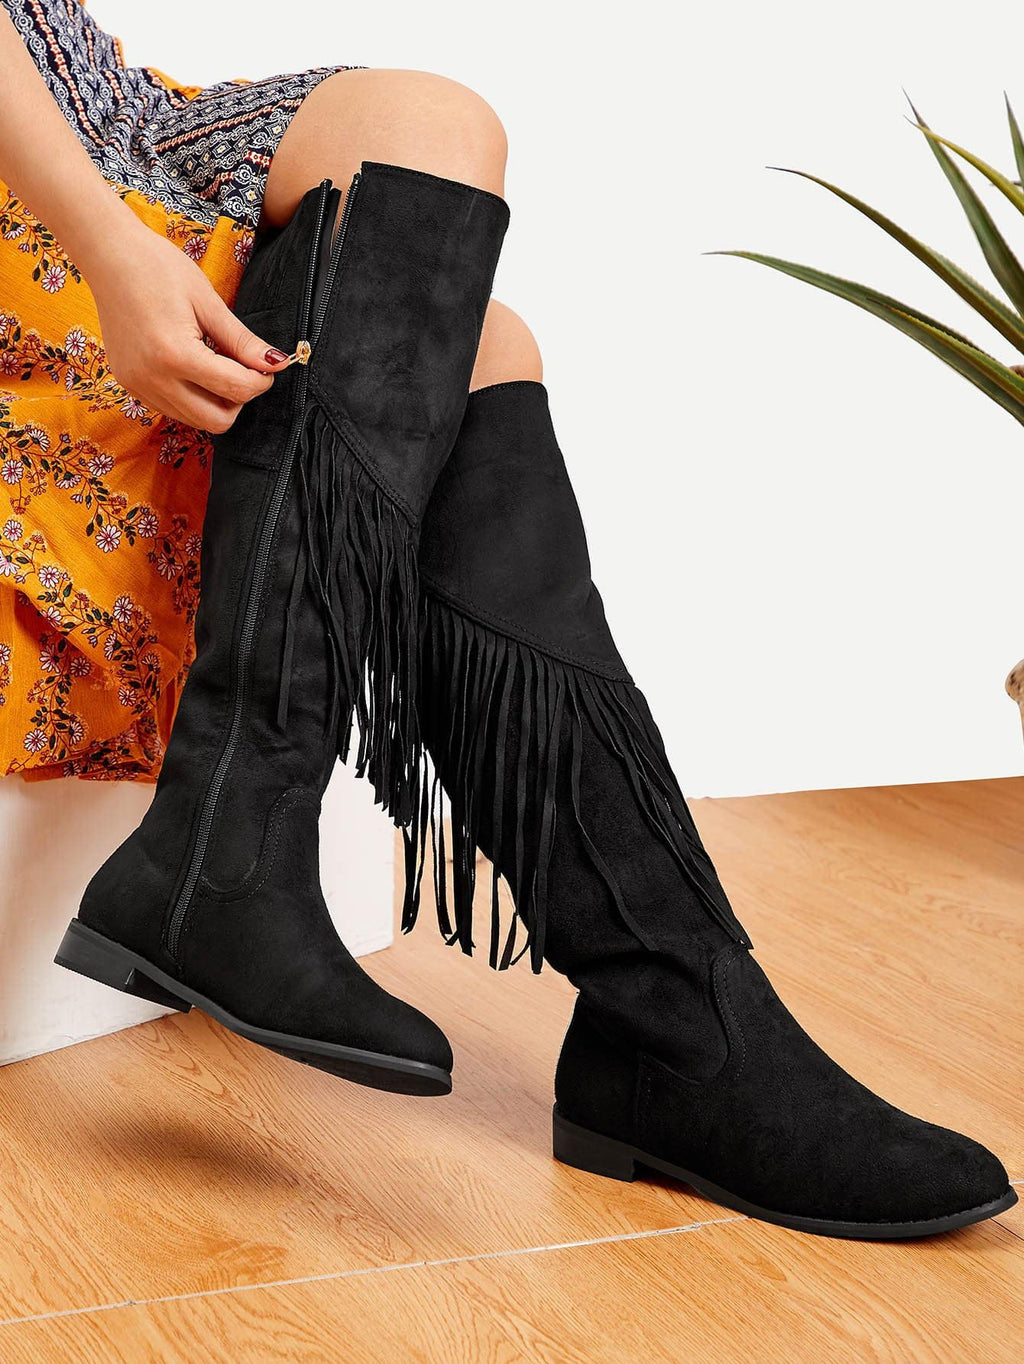 Women Boots - Tassel Detail Knee High Boots